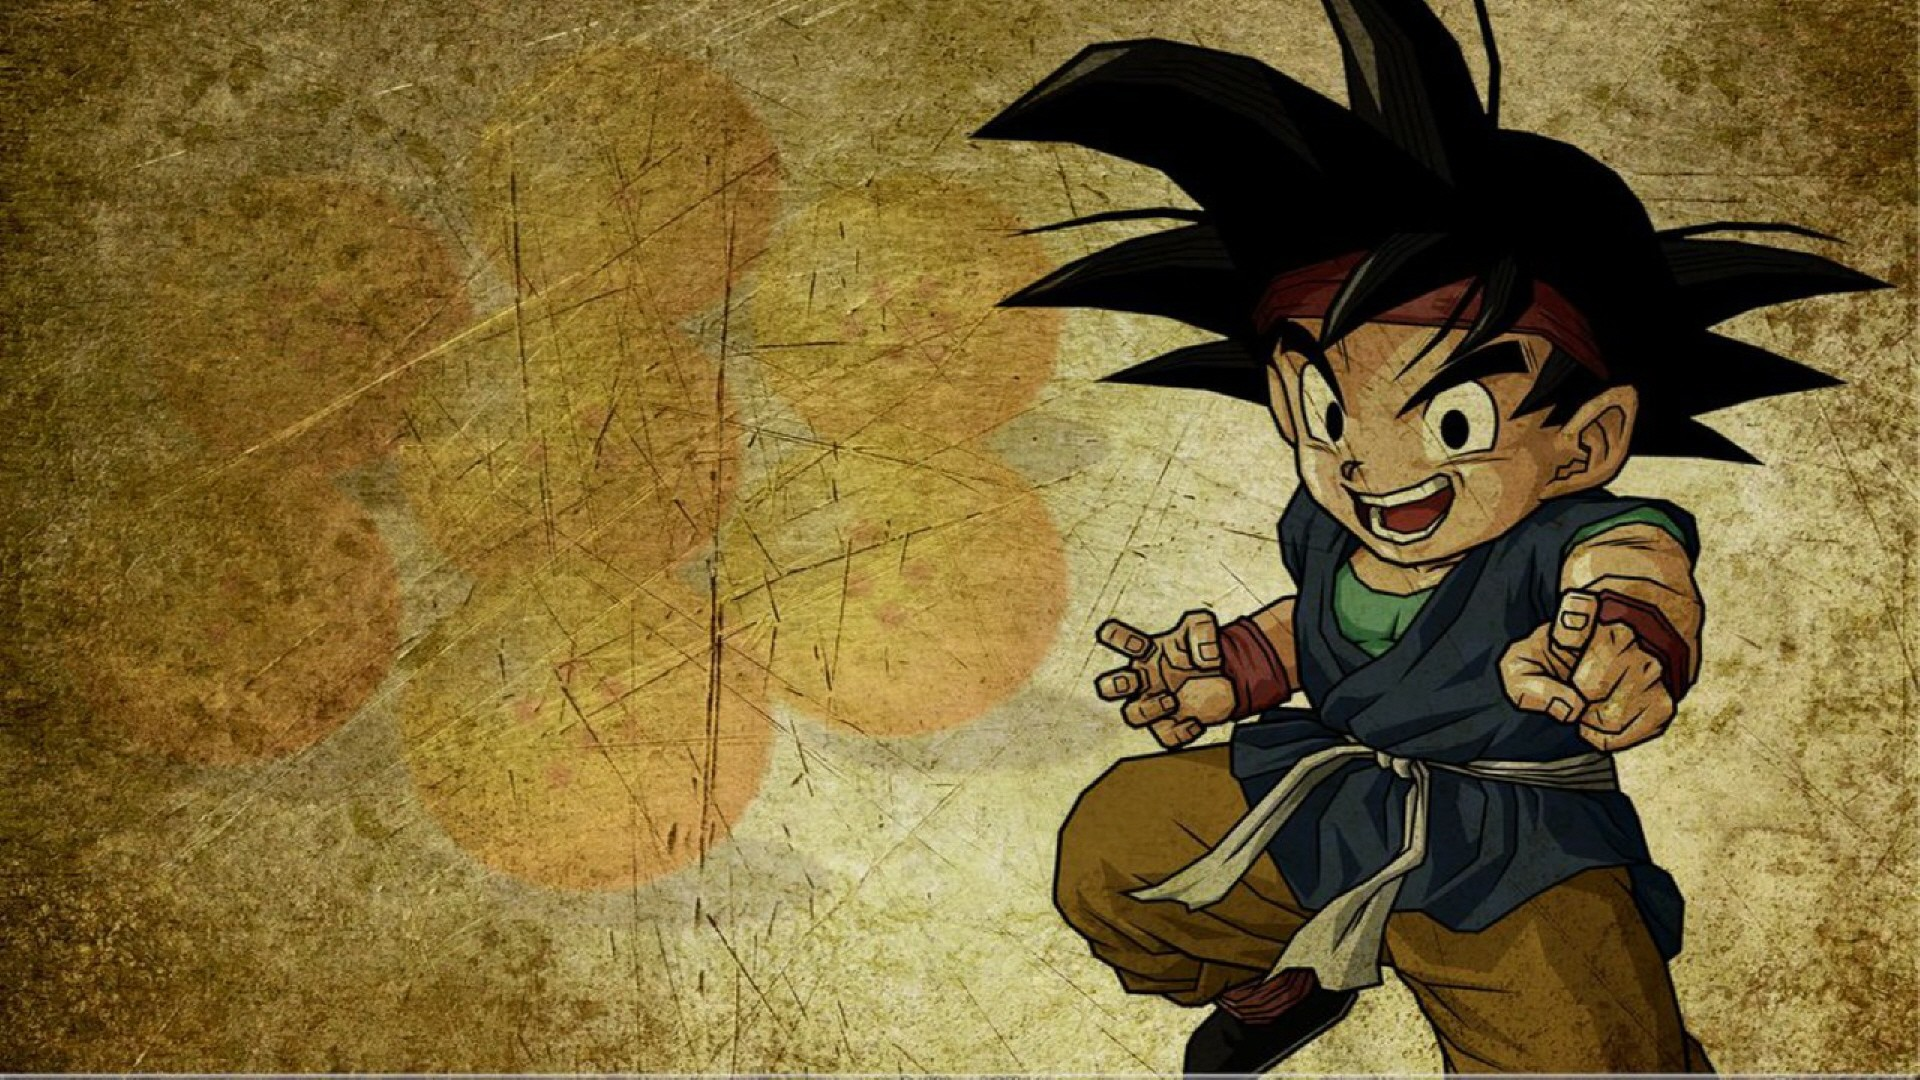 Best dragon ball z wallpaper 59 images - Images dragon ball z ...